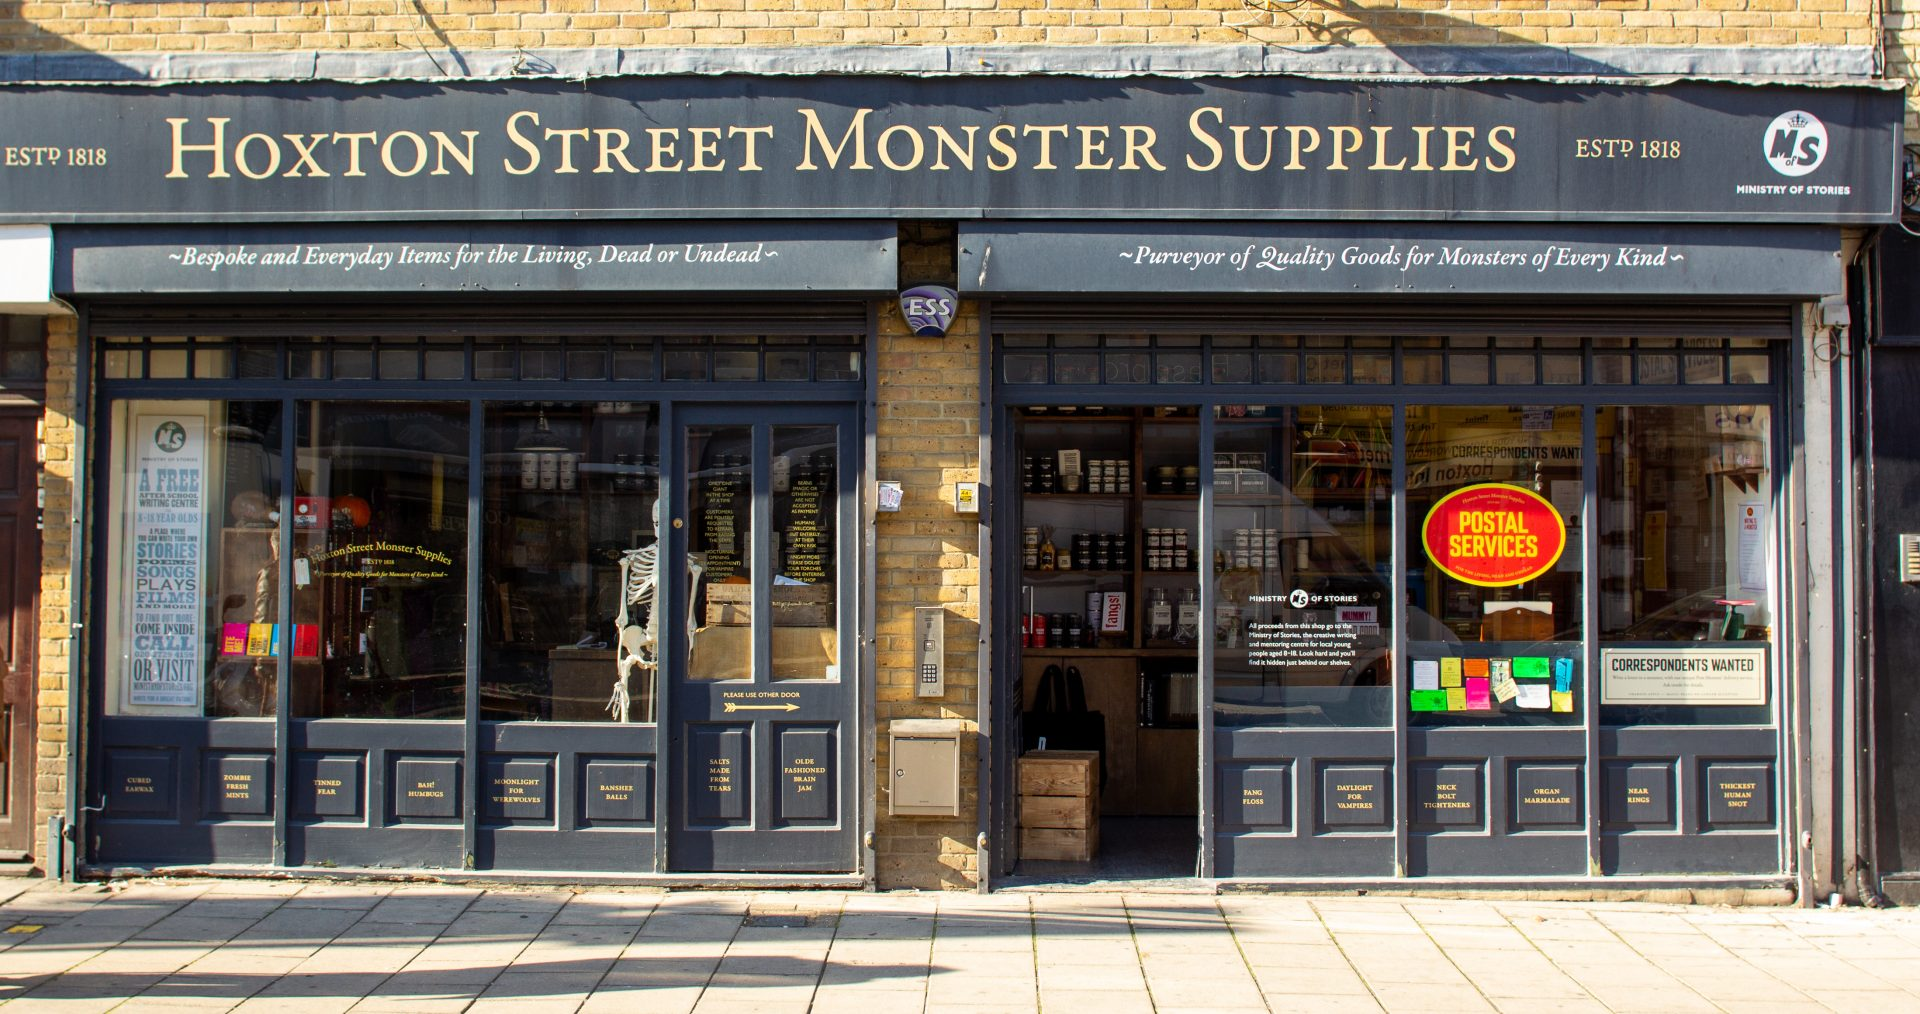 Shop front of Hoxton Street Monster Supplies